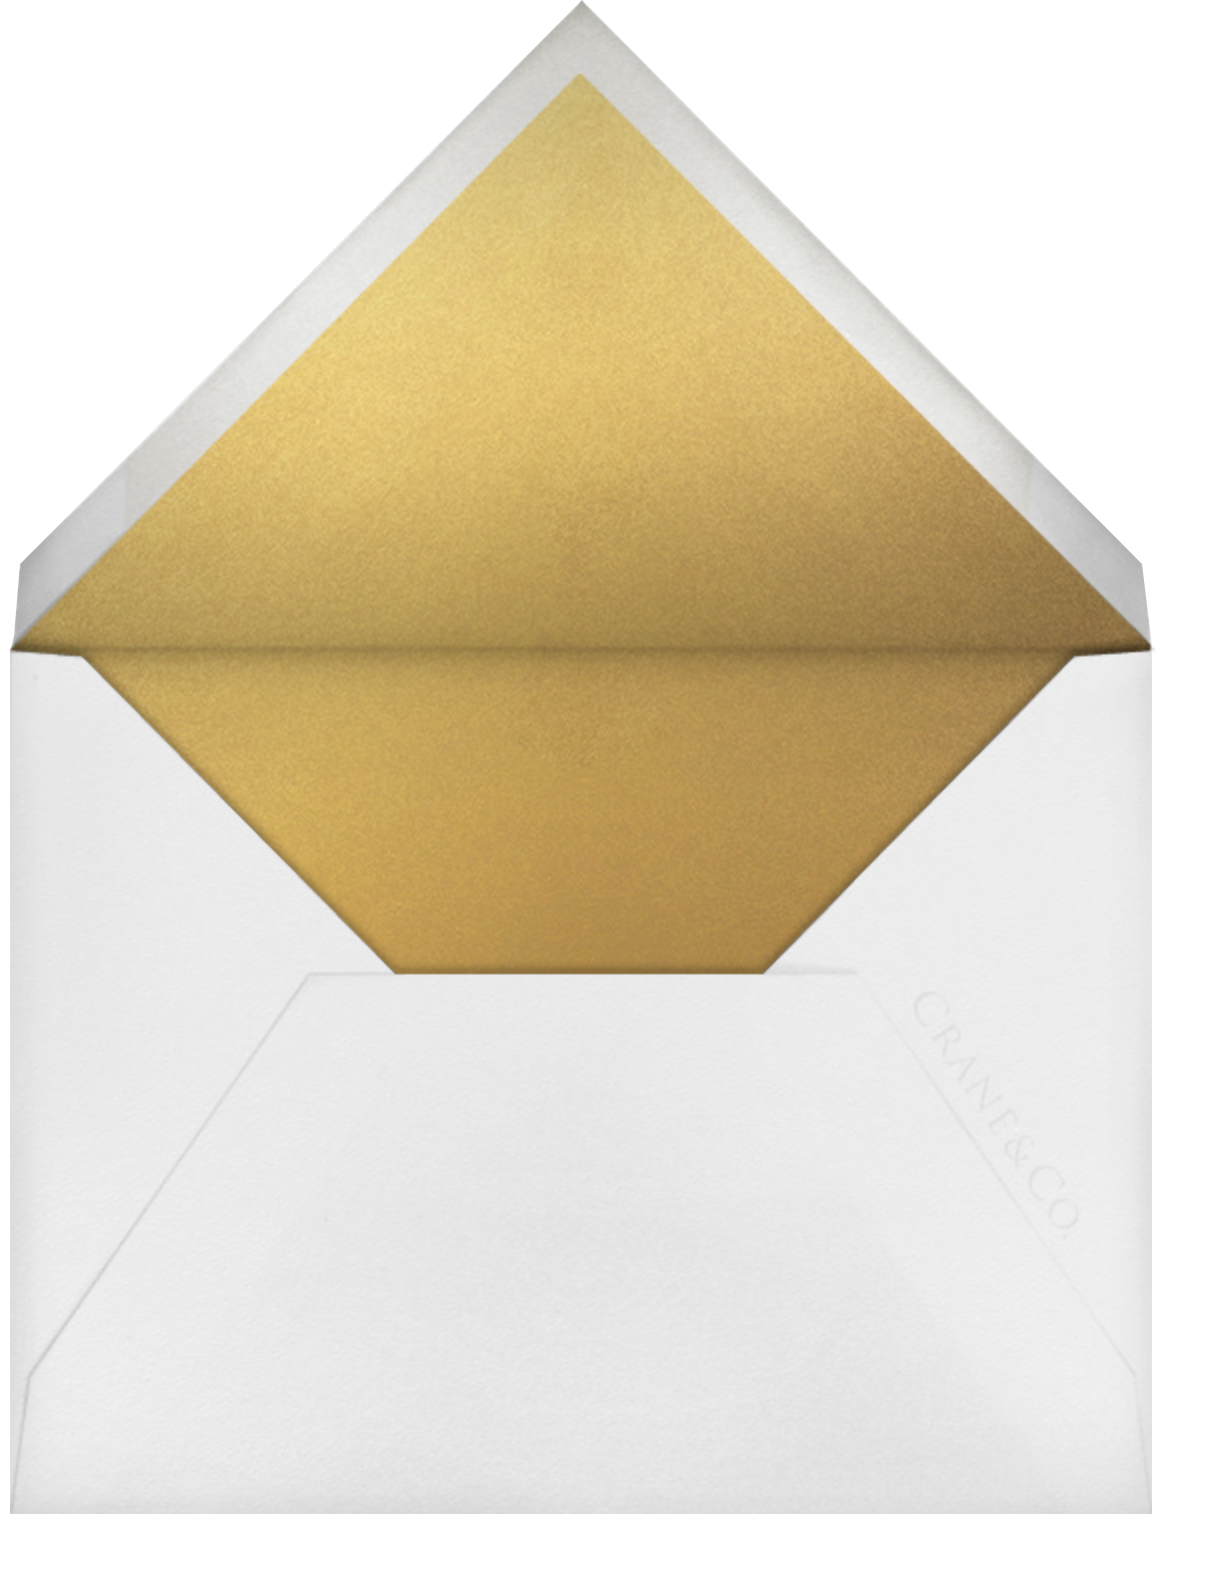 Lineal I (Stationery) - Gold - Paperless Post - Envelope